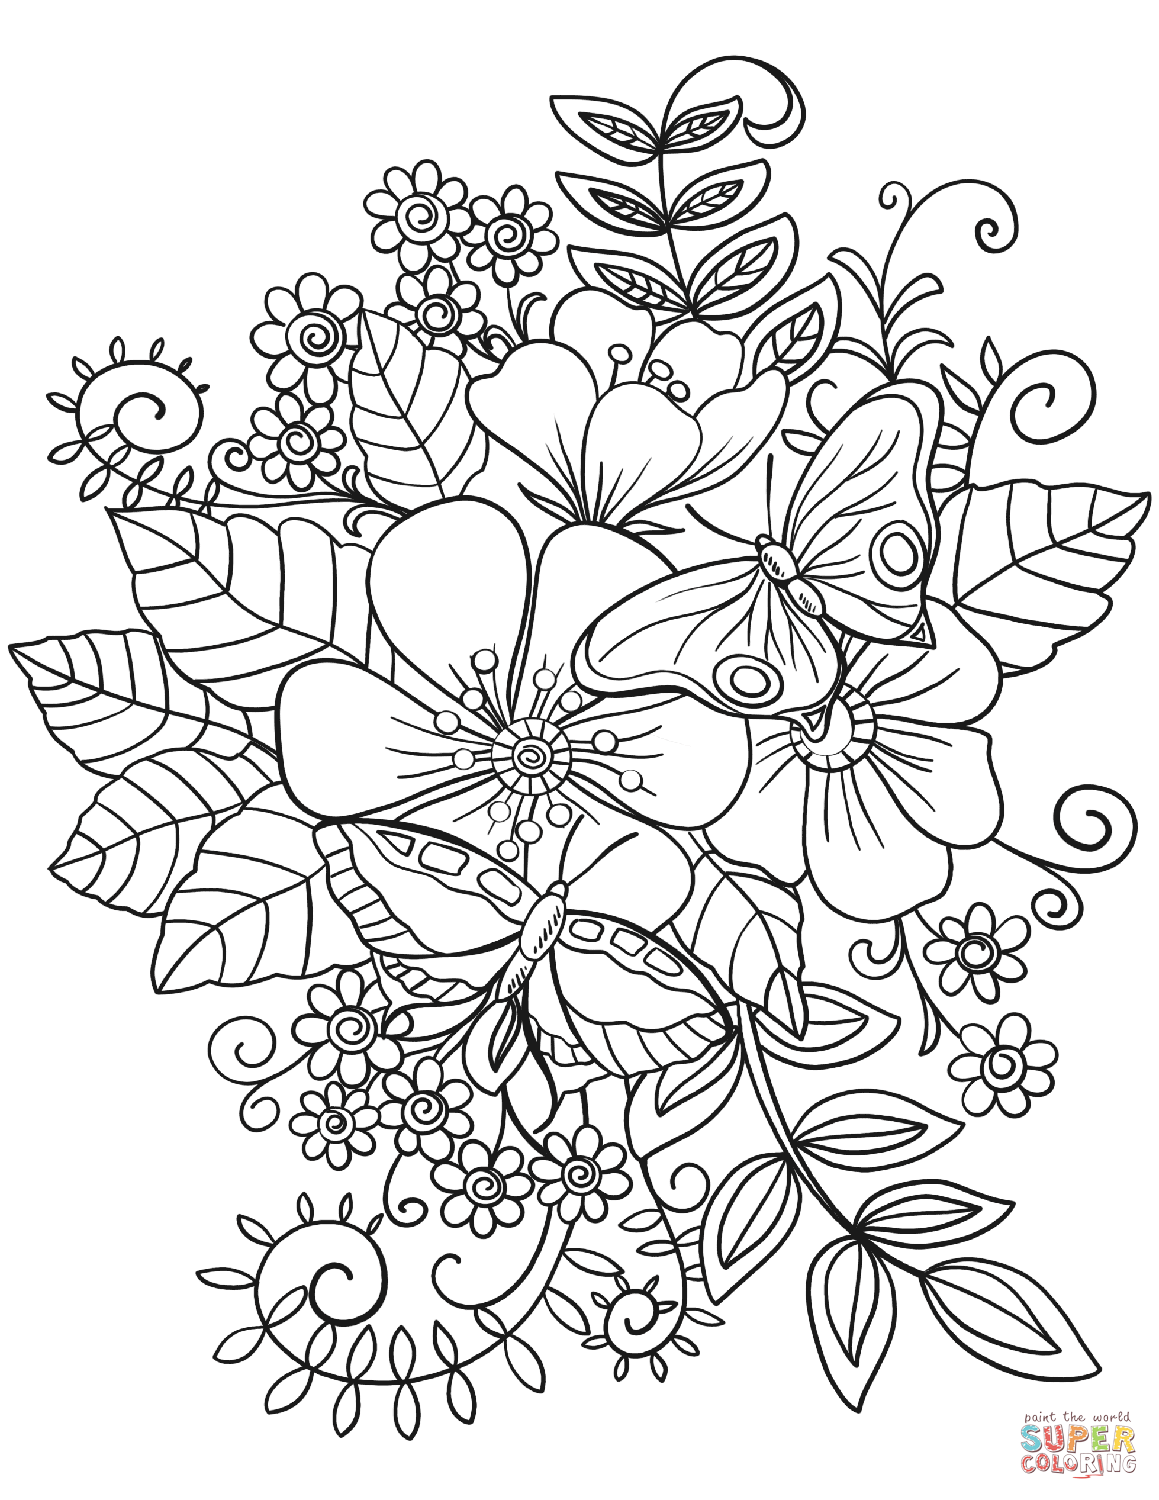 coloring page of a flower flower plants in blossom coloring page coloring sky coloring a page flower of